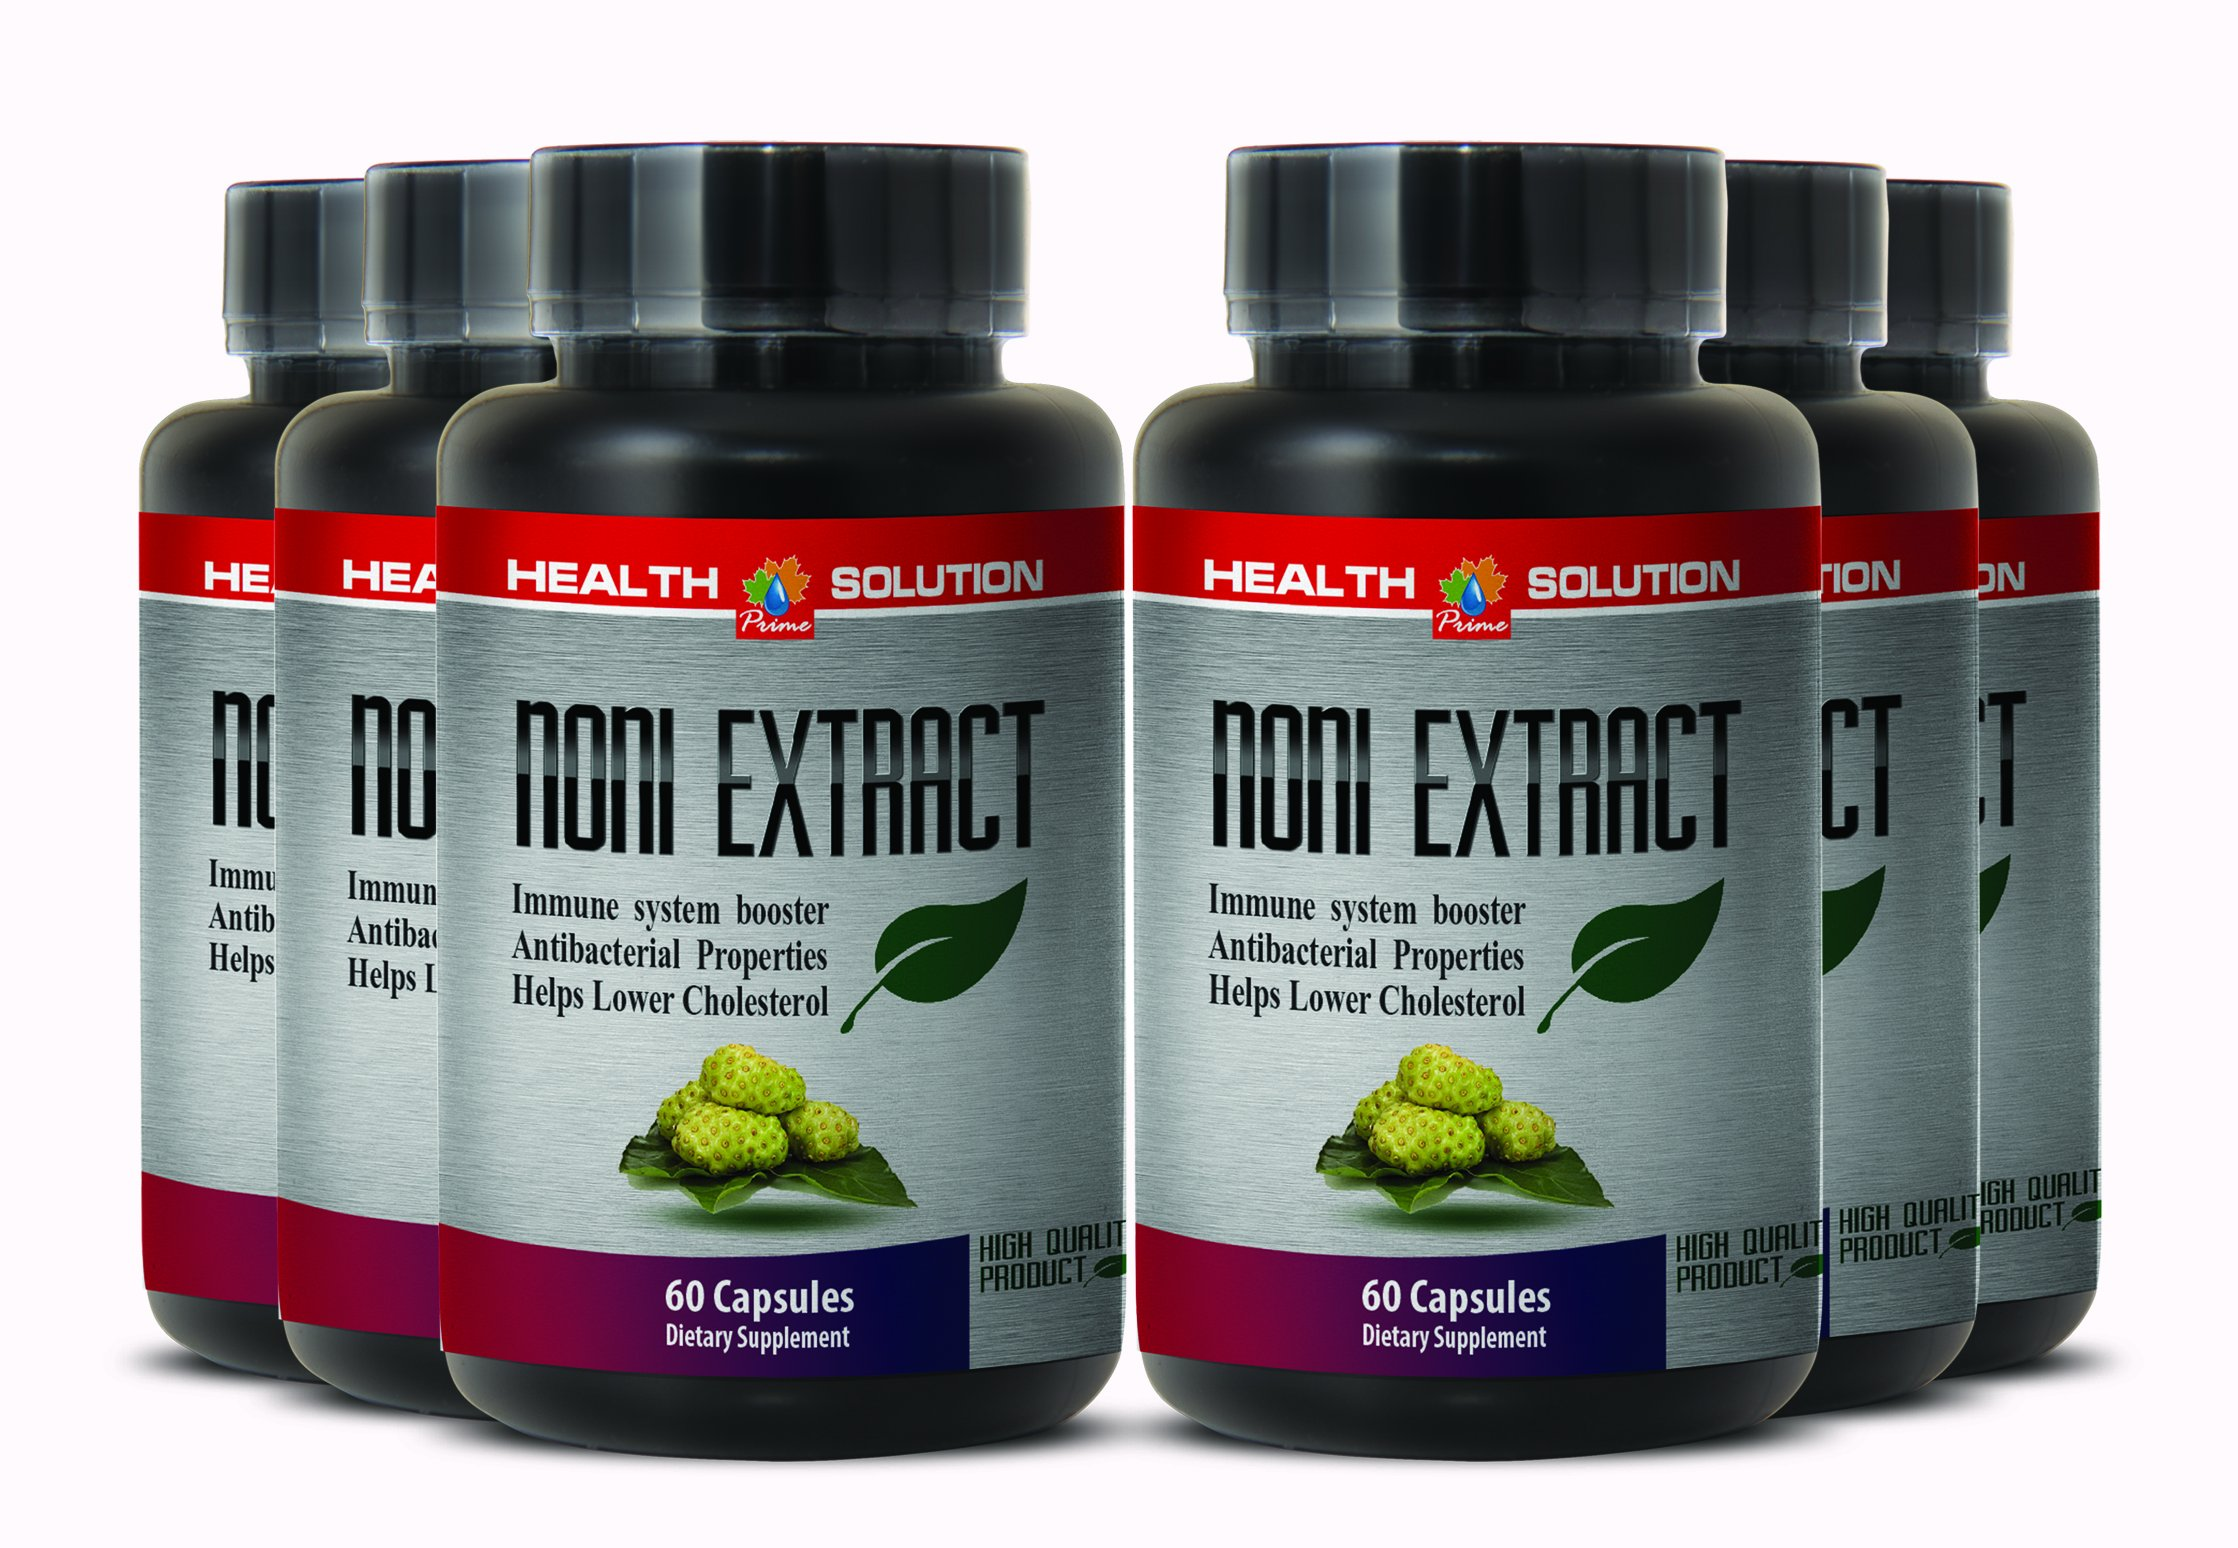 Organic noni leaf extract - NONI 8:1 CONCENTRATE 500MG - support immune system (6 Bottles) by Health Solution Prime